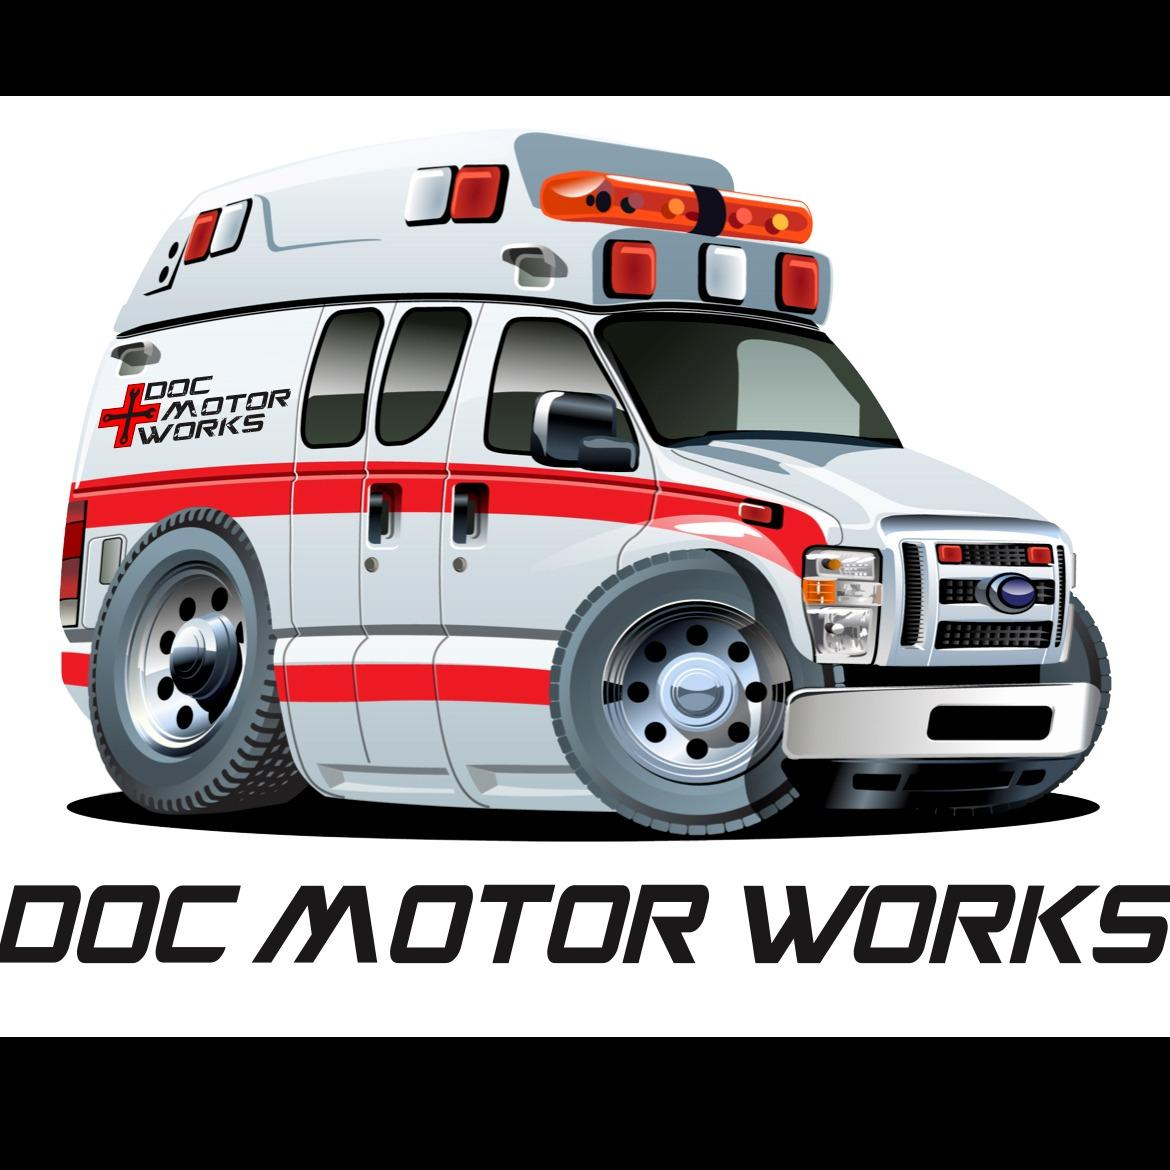 Doc Motor Works Auto Repair